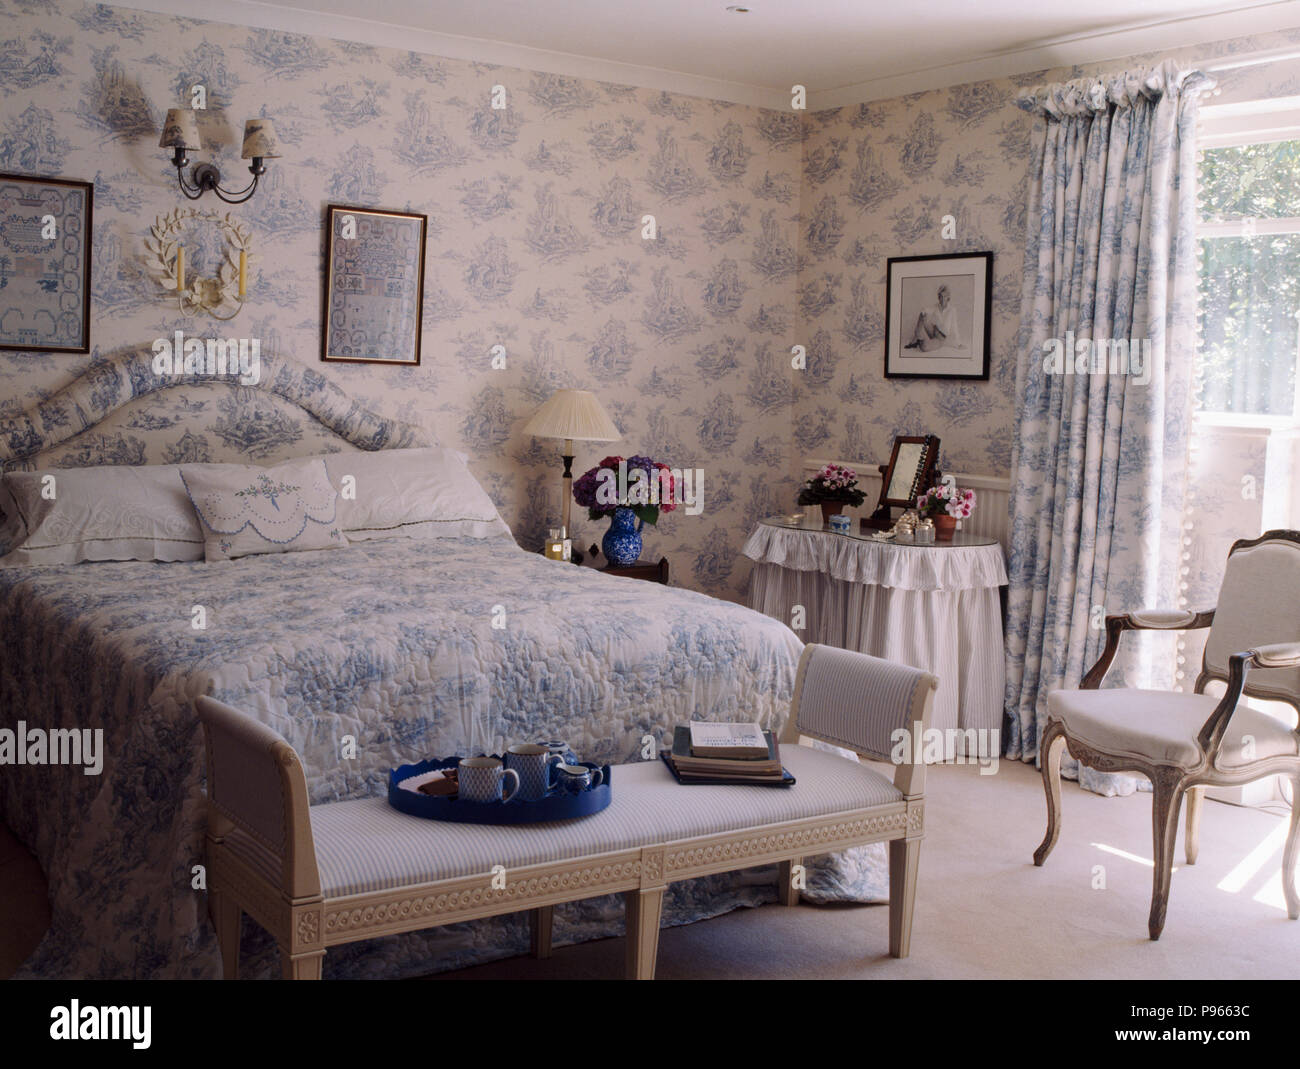 Merveilleux Blue+white Toile De Jouy Wallpaper And Curtains And Bedlinen In Country  Bedroom